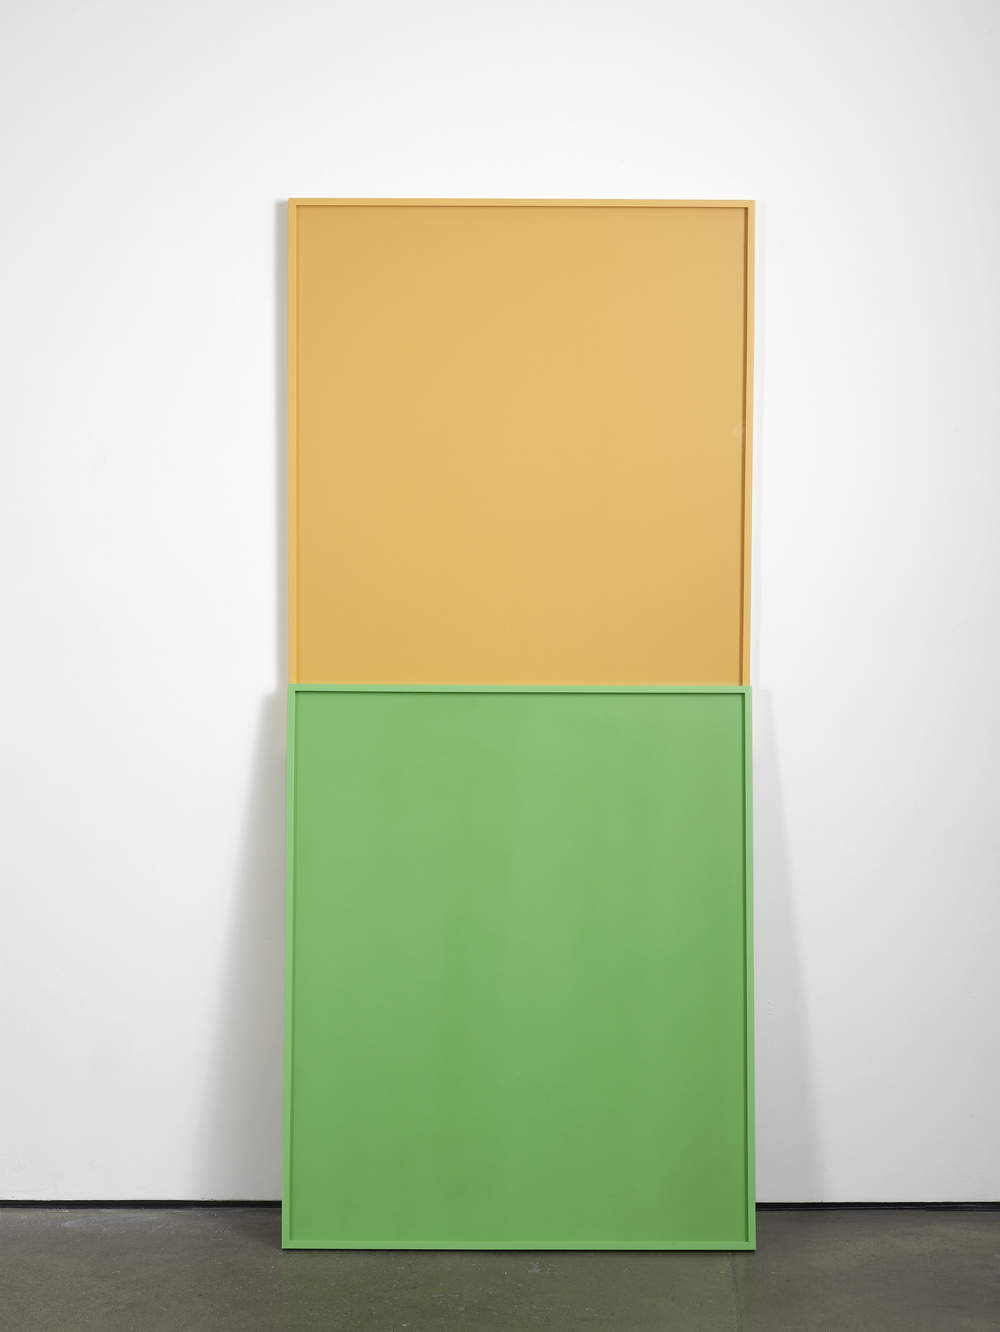 Matt Connors Folkways (second version) 2012 Two artist frames 2 parts, each part: 122 x 102 cm / 48 x 40.1 in